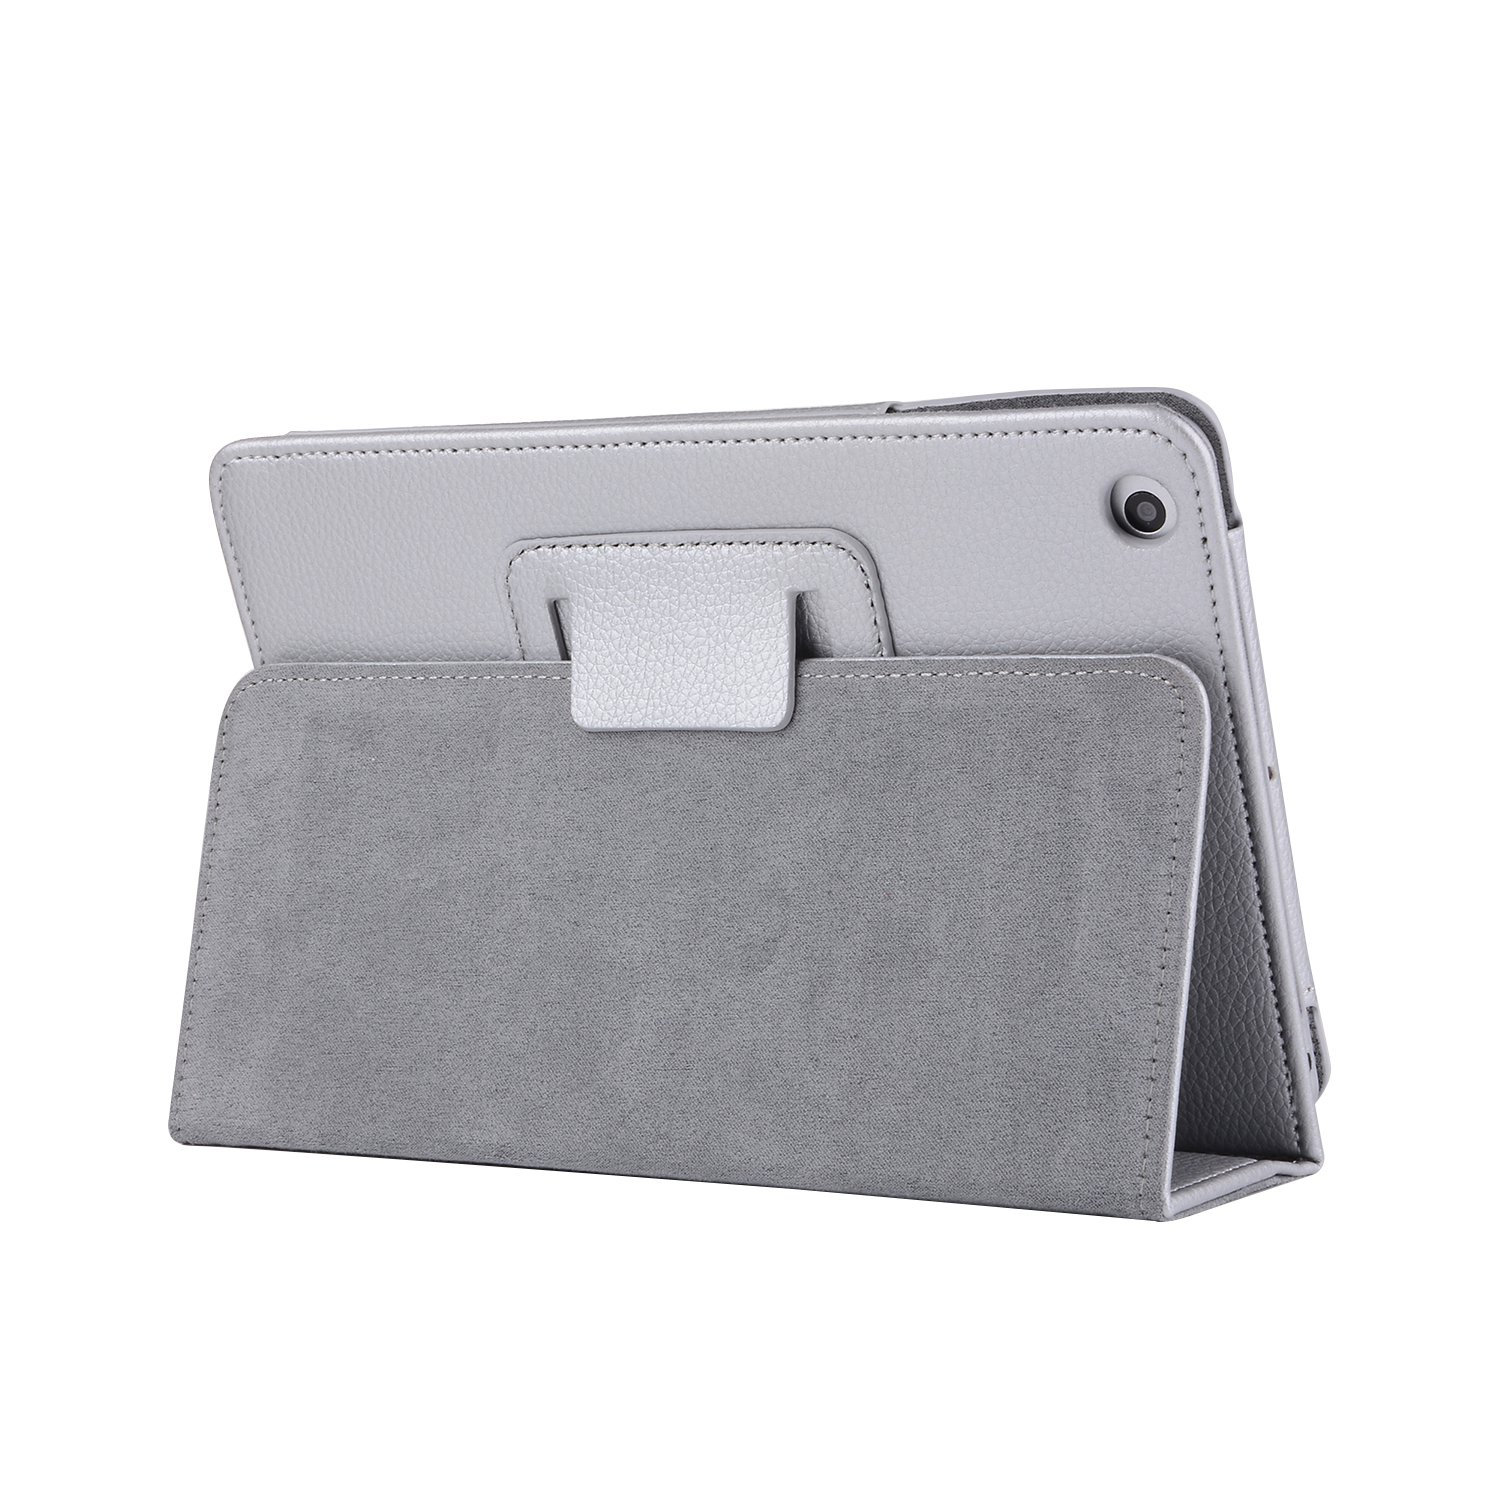 Pro 10.5 iPad Case, Skin Cover PU Leather Lightweight Slim Shell Shockproof Waterproof Tablet PC Case Stand Function Shell iPad Pro 10.5 - Silver